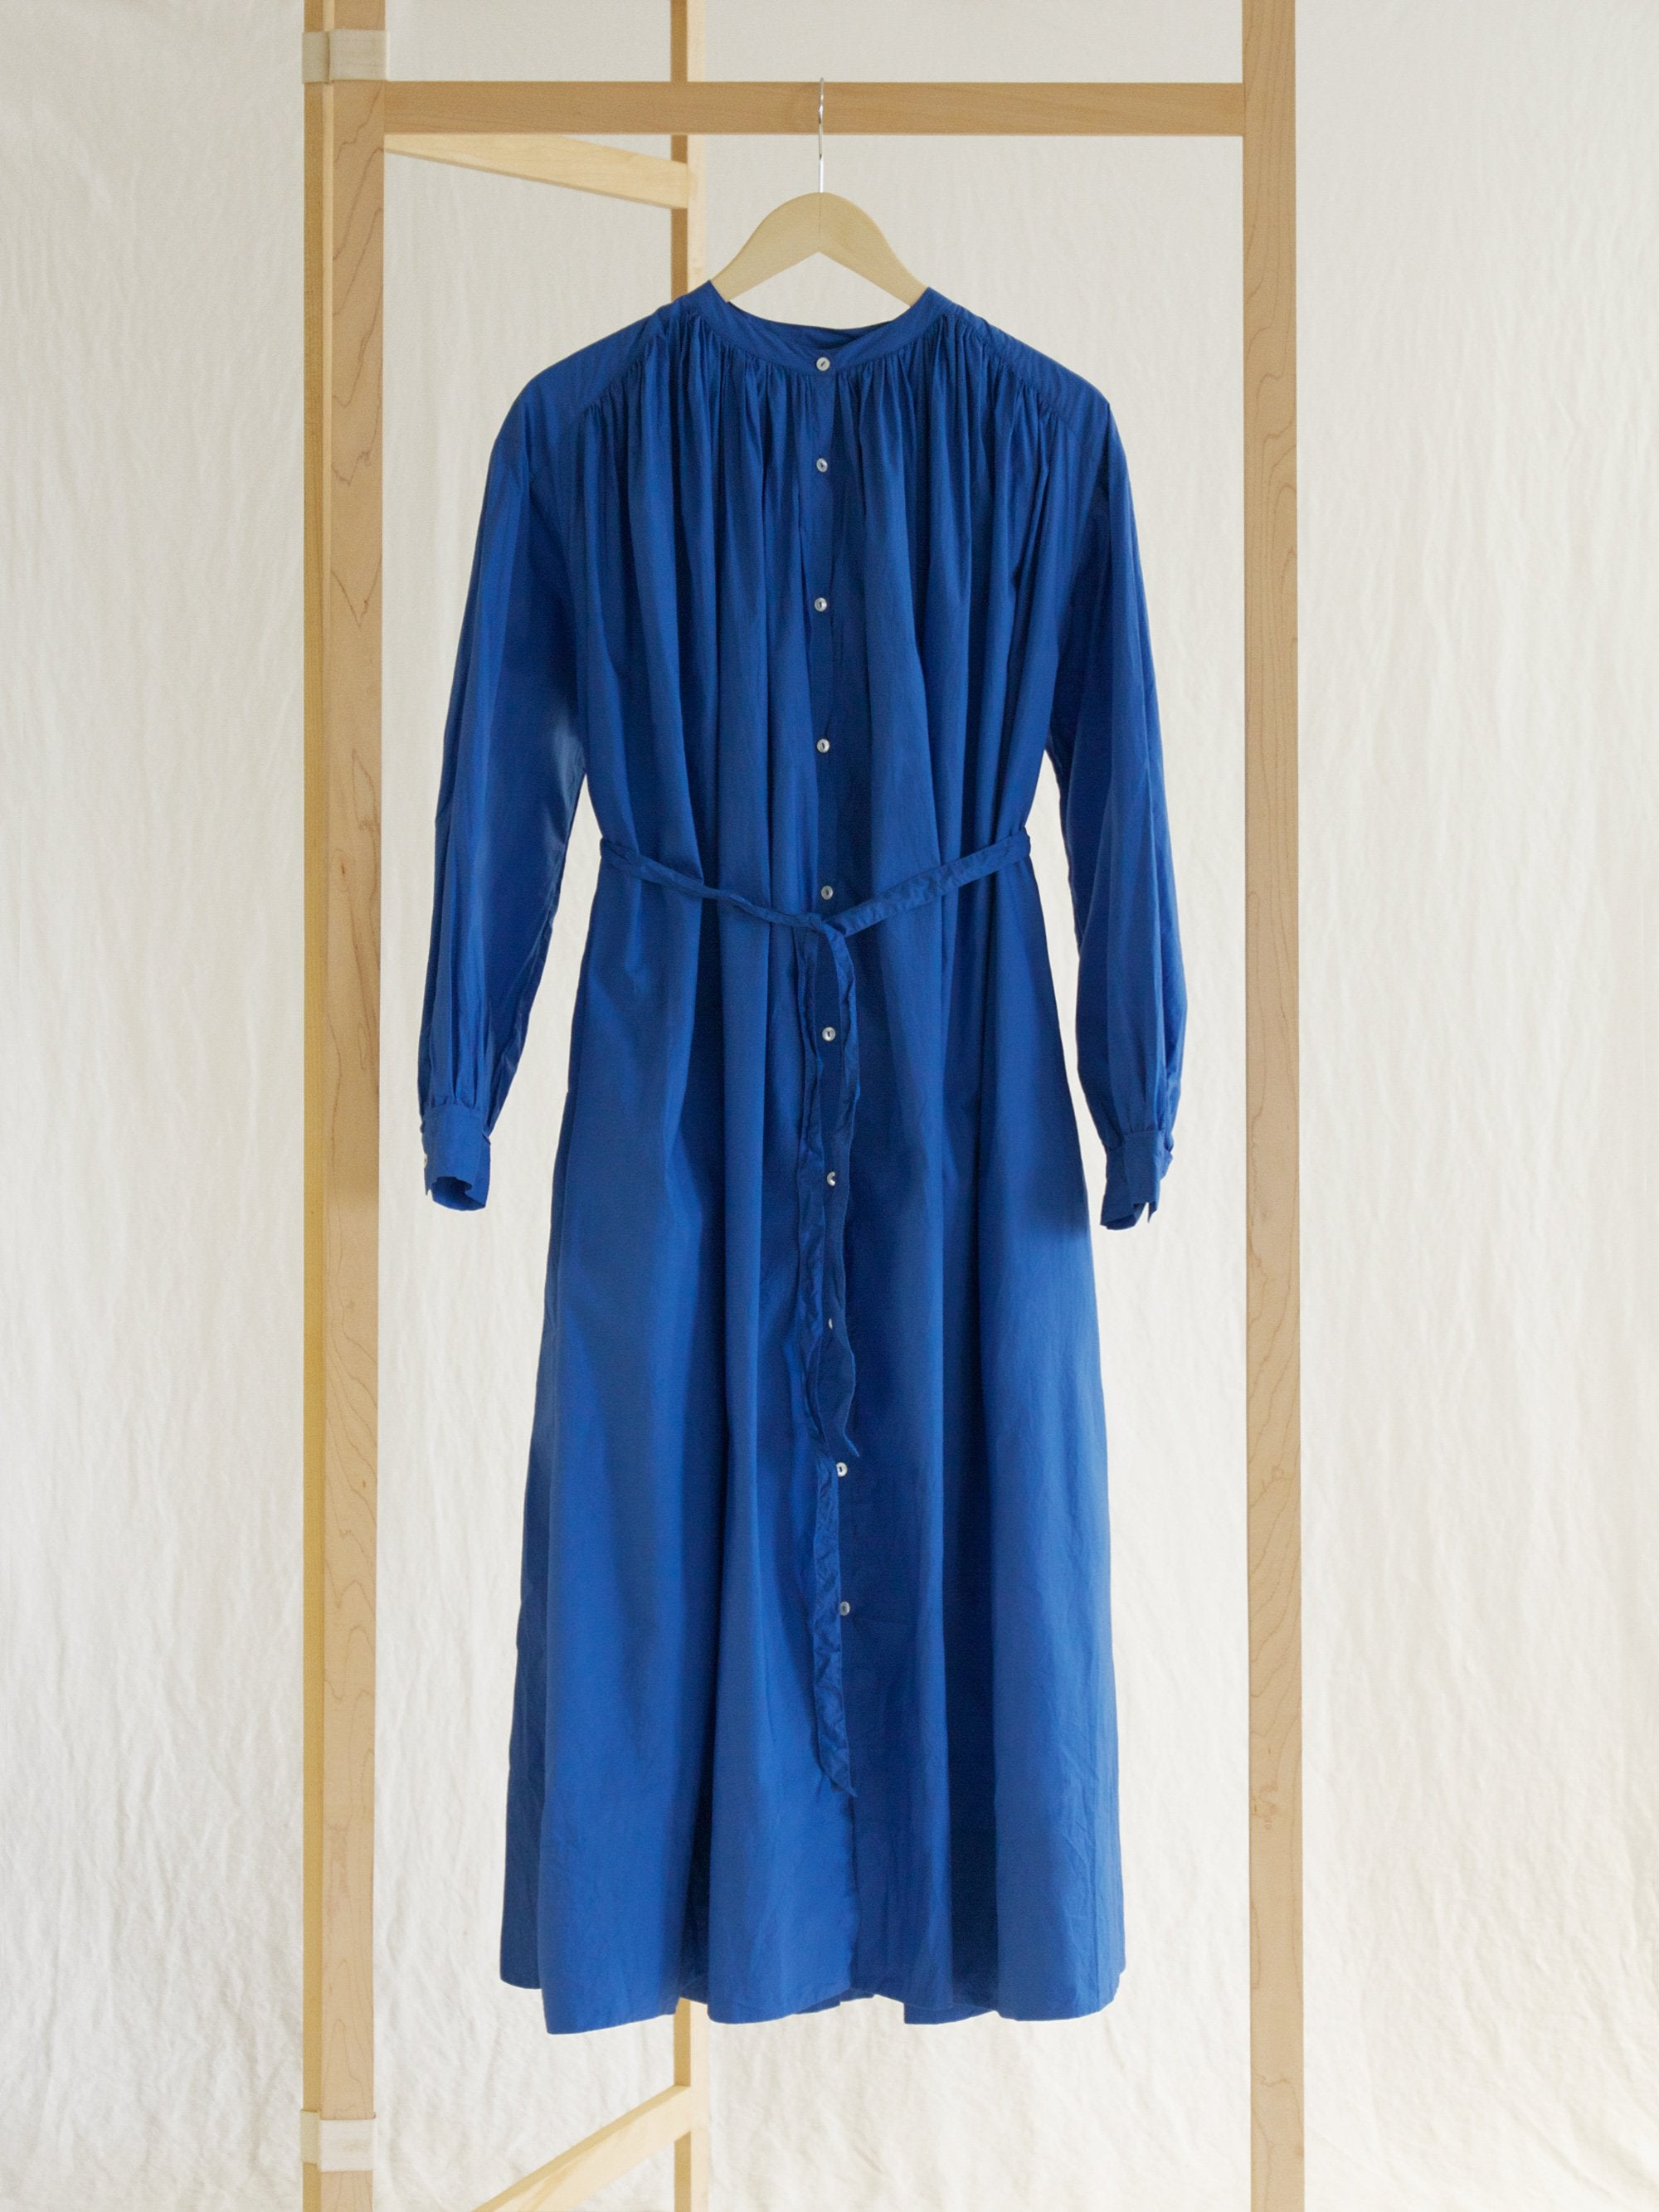 Namu Shop - Veritecoeur Royal Blue Dress